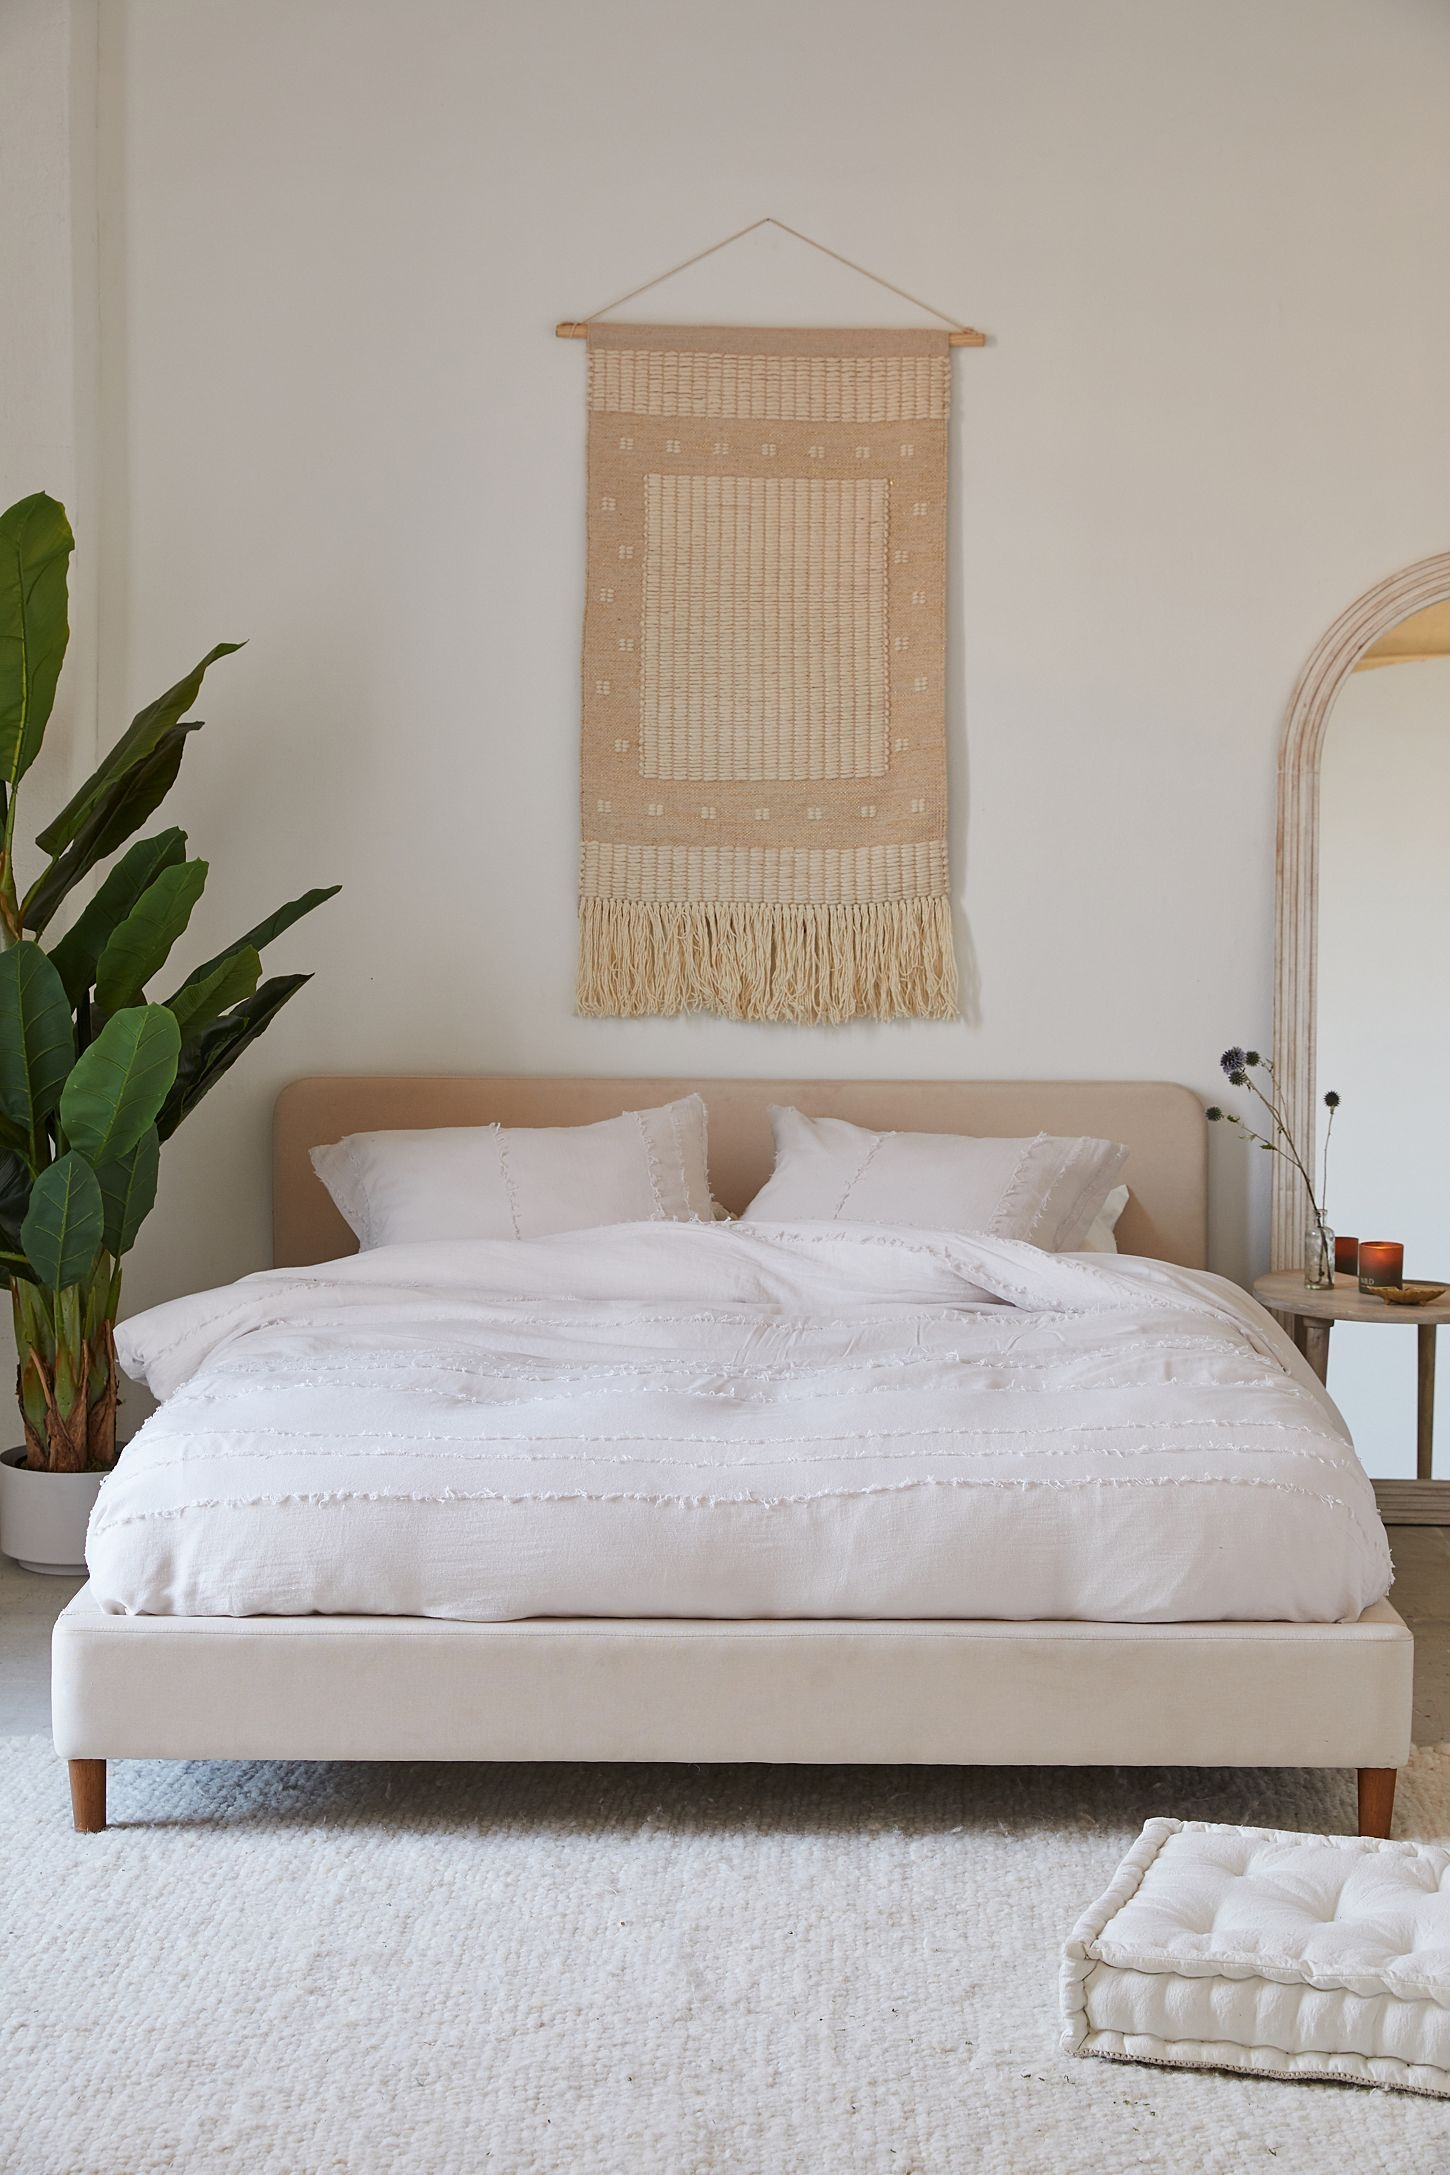 Amazing Headboard Design Ideas For Beds That Look Great02